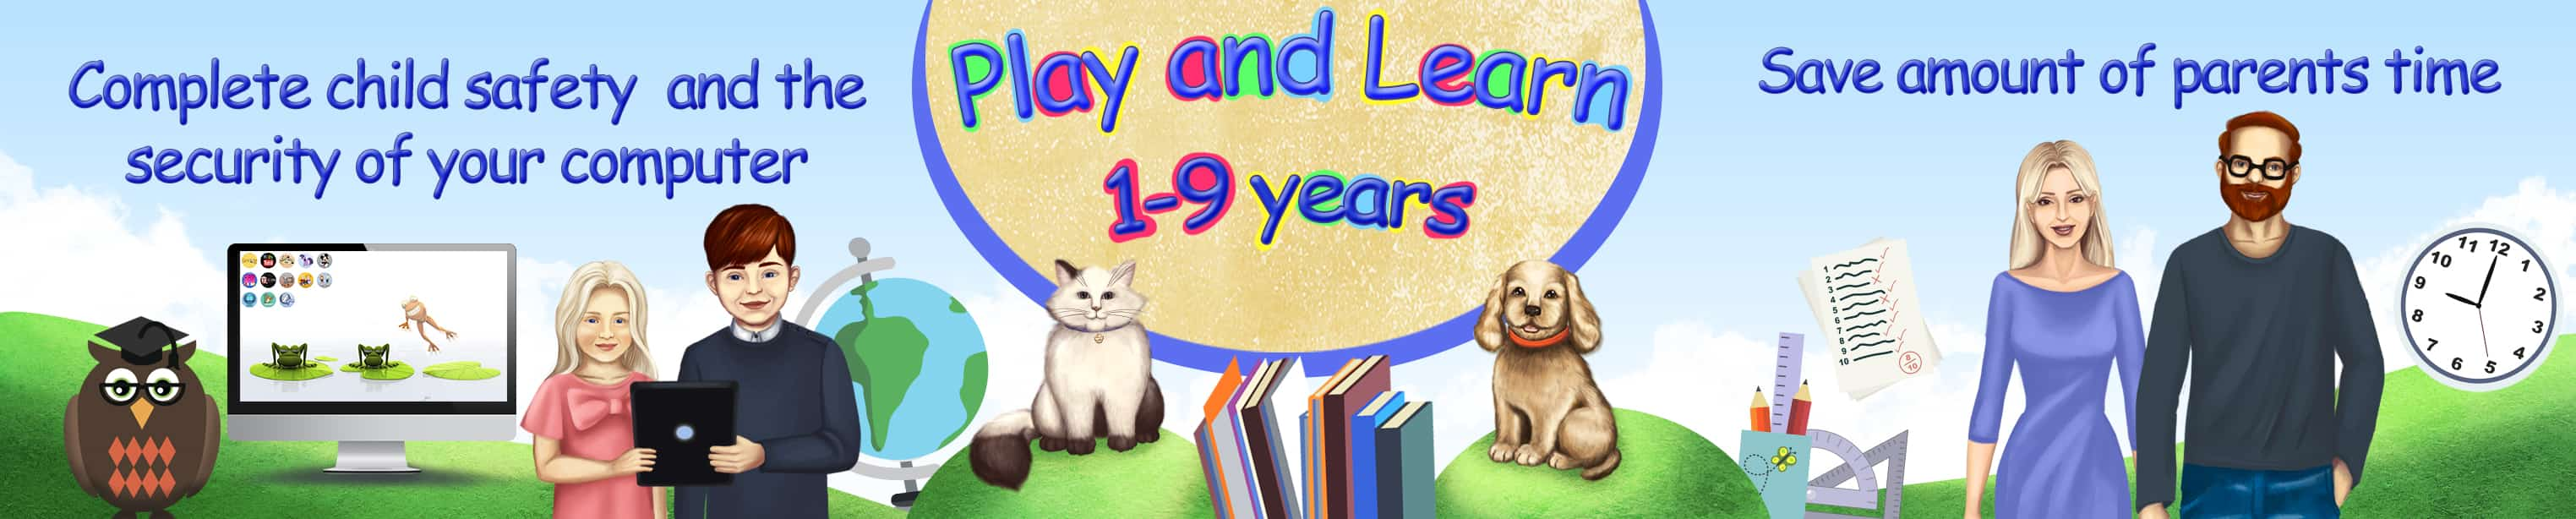 Play and Learn. Education of children from 1 to 9 years